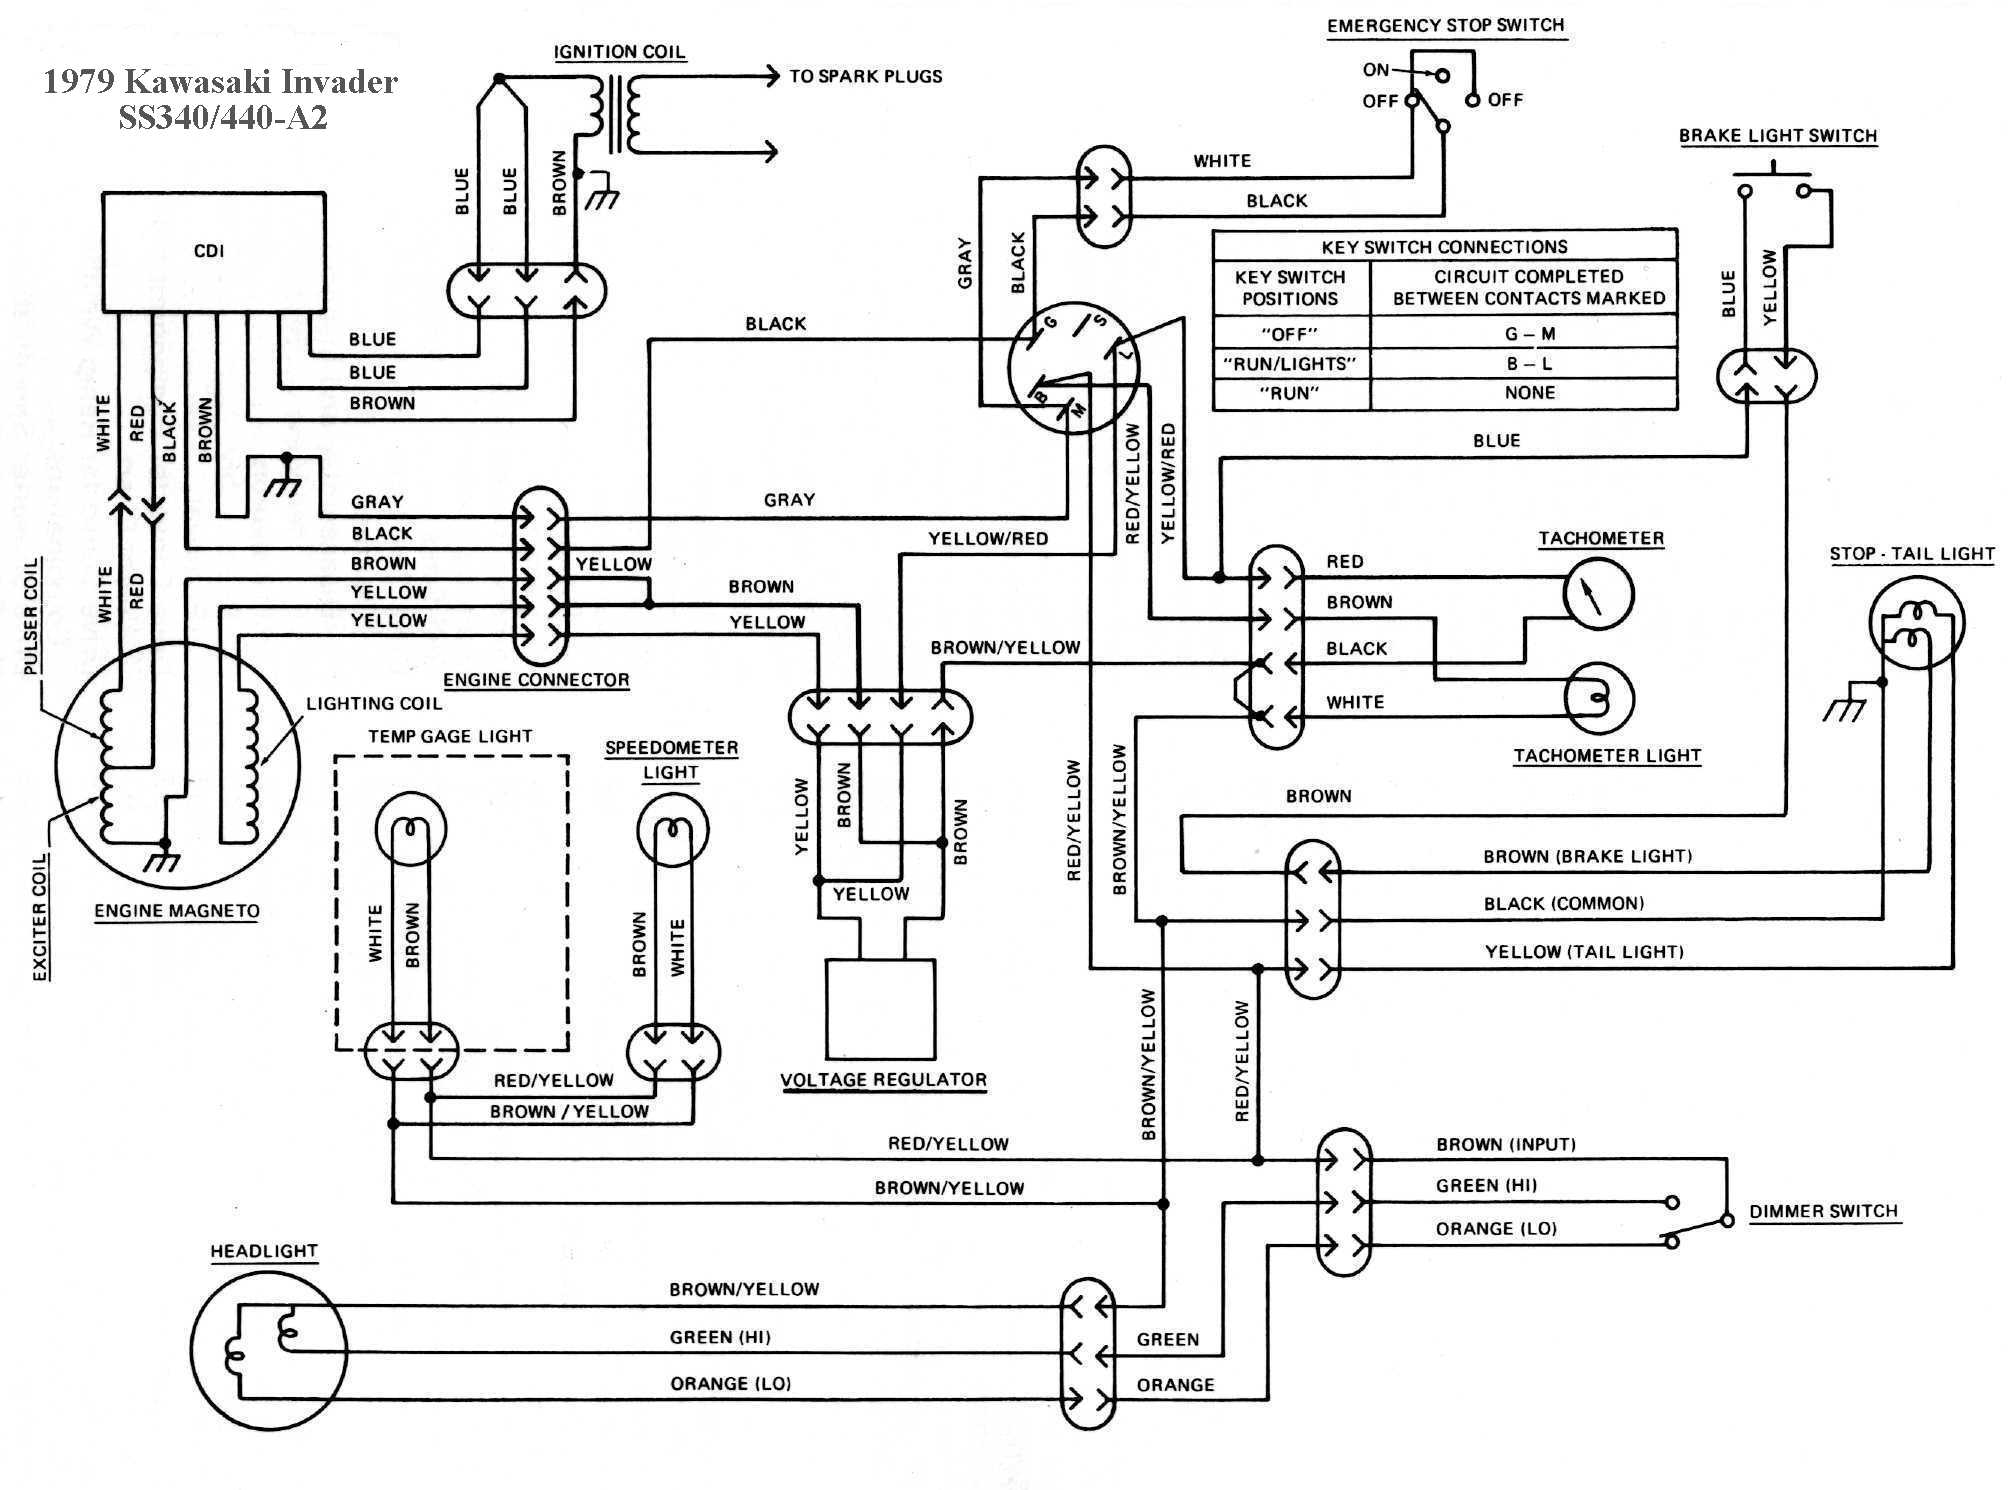 wrg 7679] a2 wiring diagram